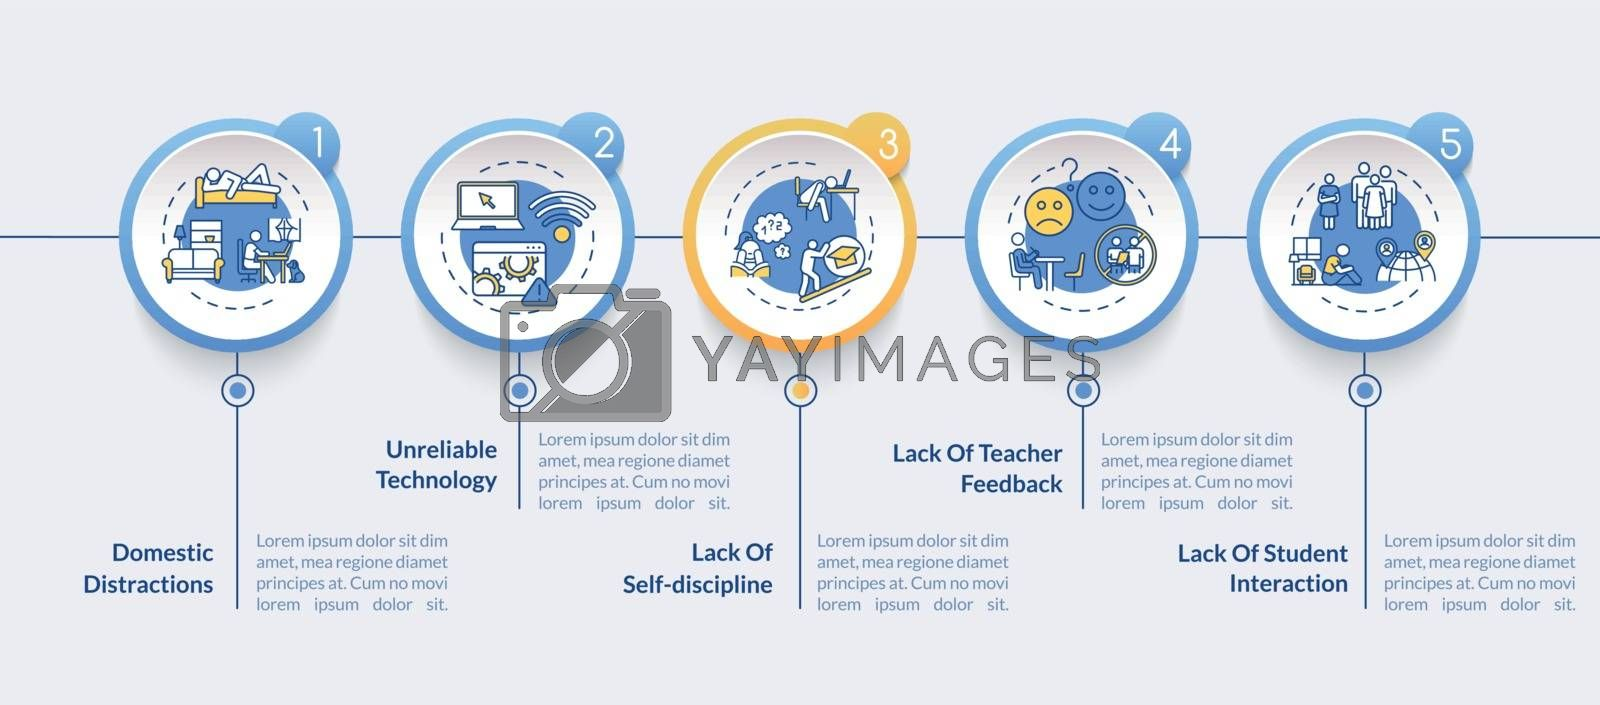 Distance learning disadvantages vector infographic template. Elearning presentation design elements. Data visualization with 5 steps. Process timeline chart. Workflow layout with linear icons